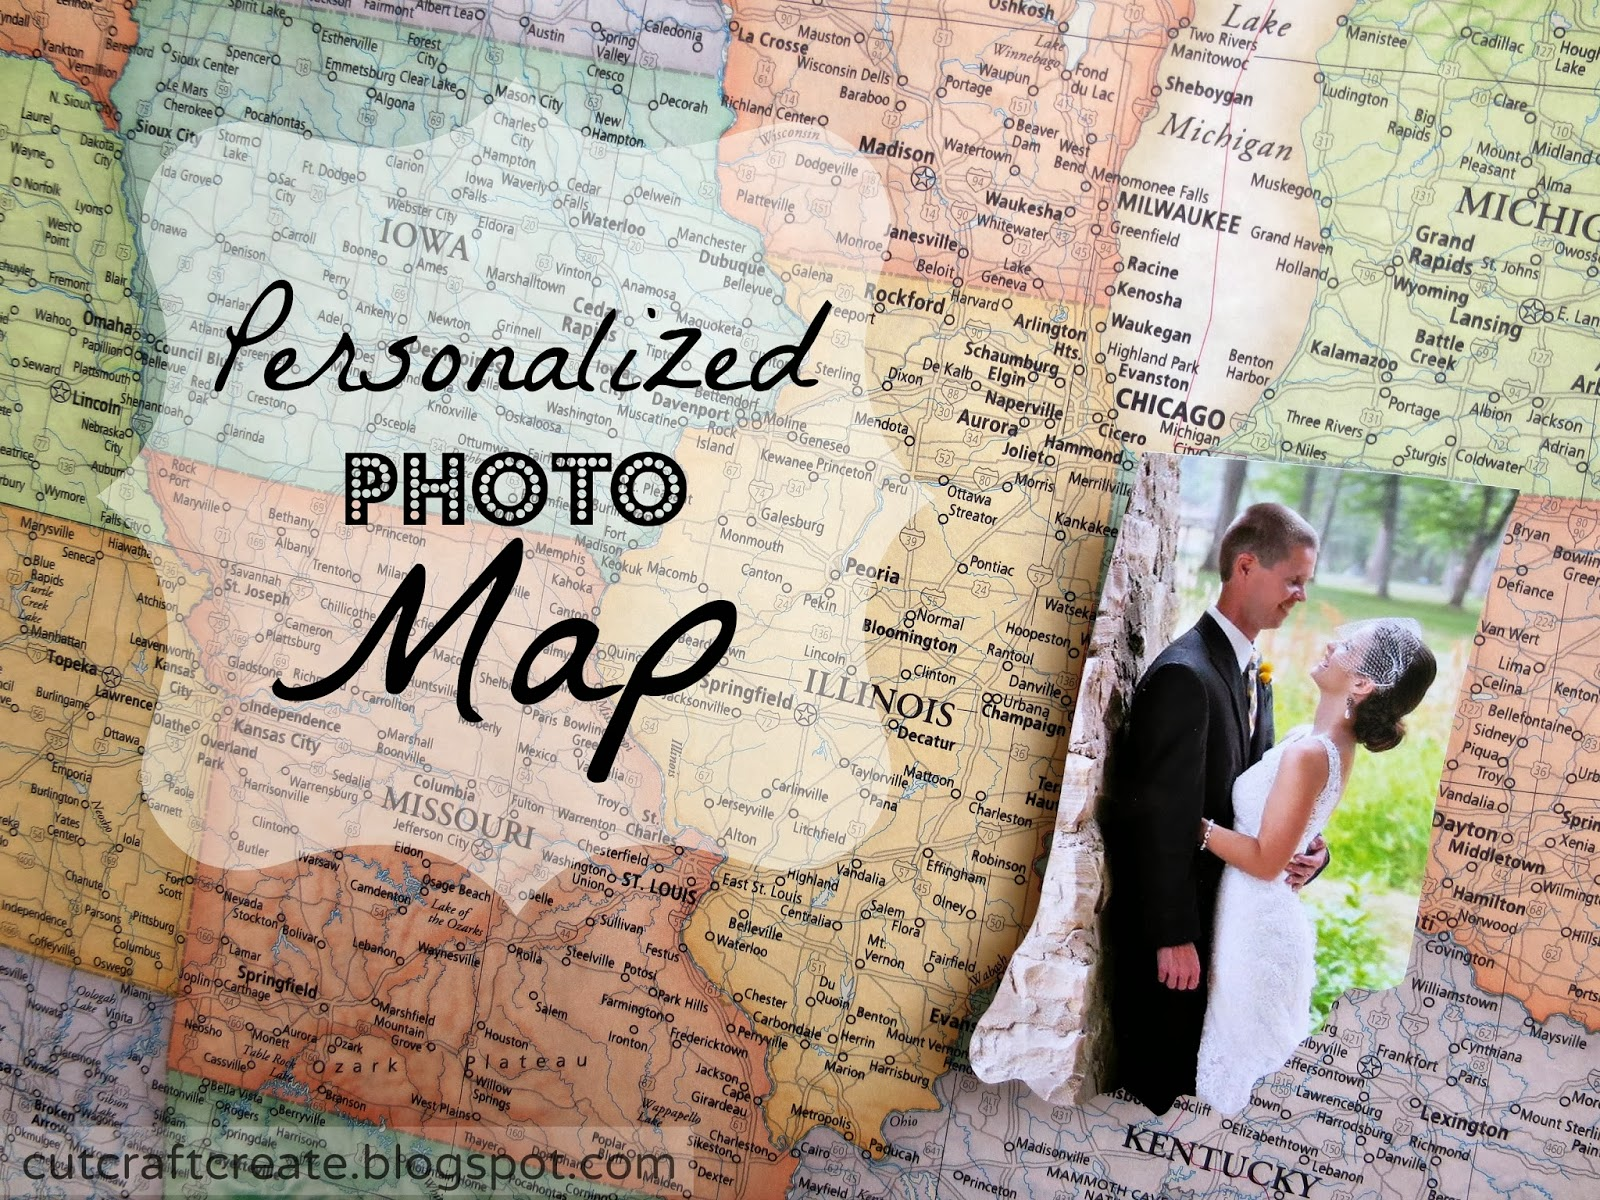 Personalized Us Map.Cut Craft Create Personalized Photo Map